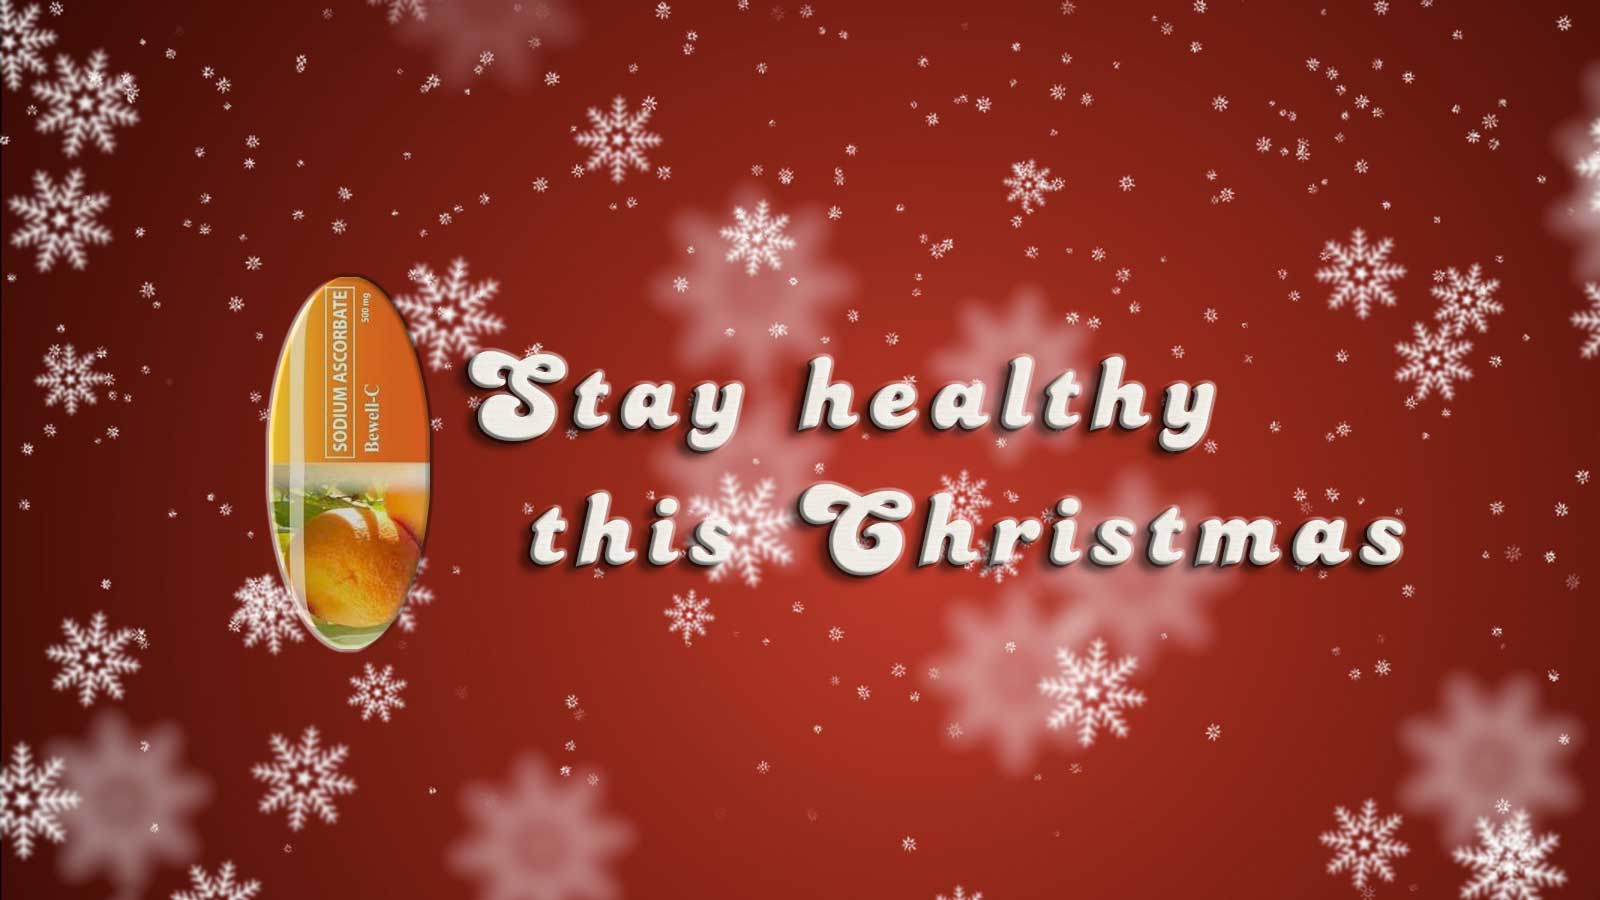 Stay healthy this season with Bewell-C